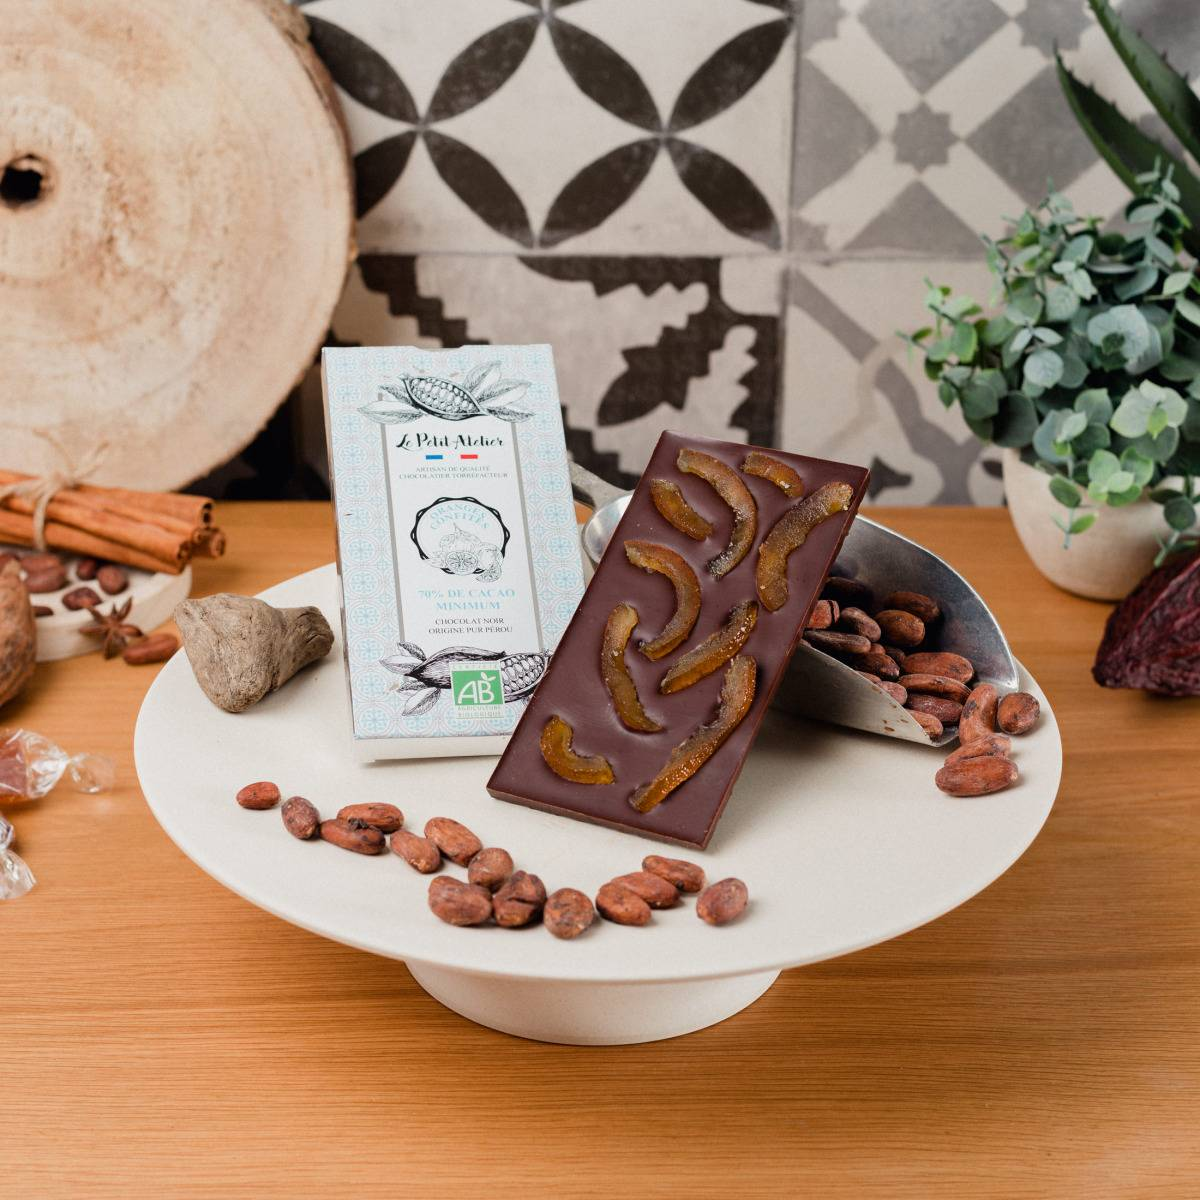 Le Petit Atelier Tablette Chocolat Noir Bio Aux Écorces D'orange Confite